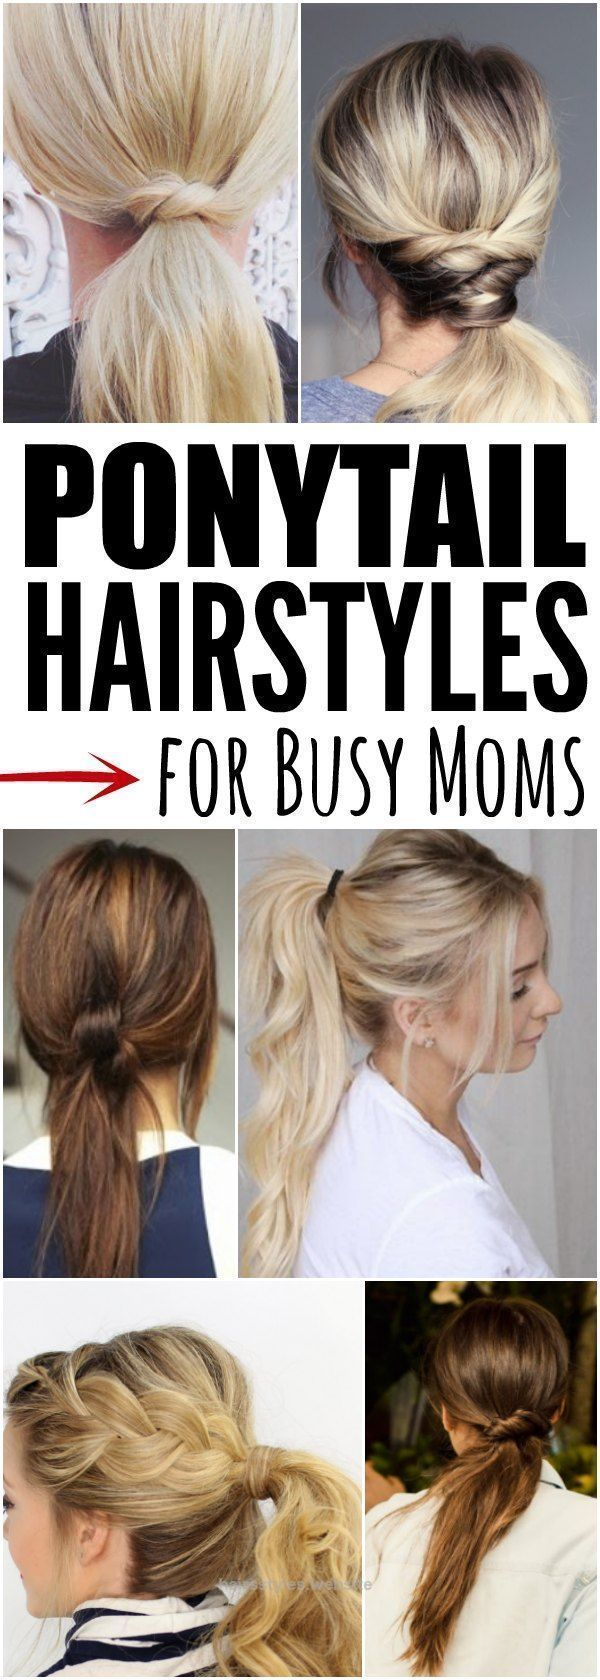 Splendid here are quick and easy ponytail hairstyles for busy